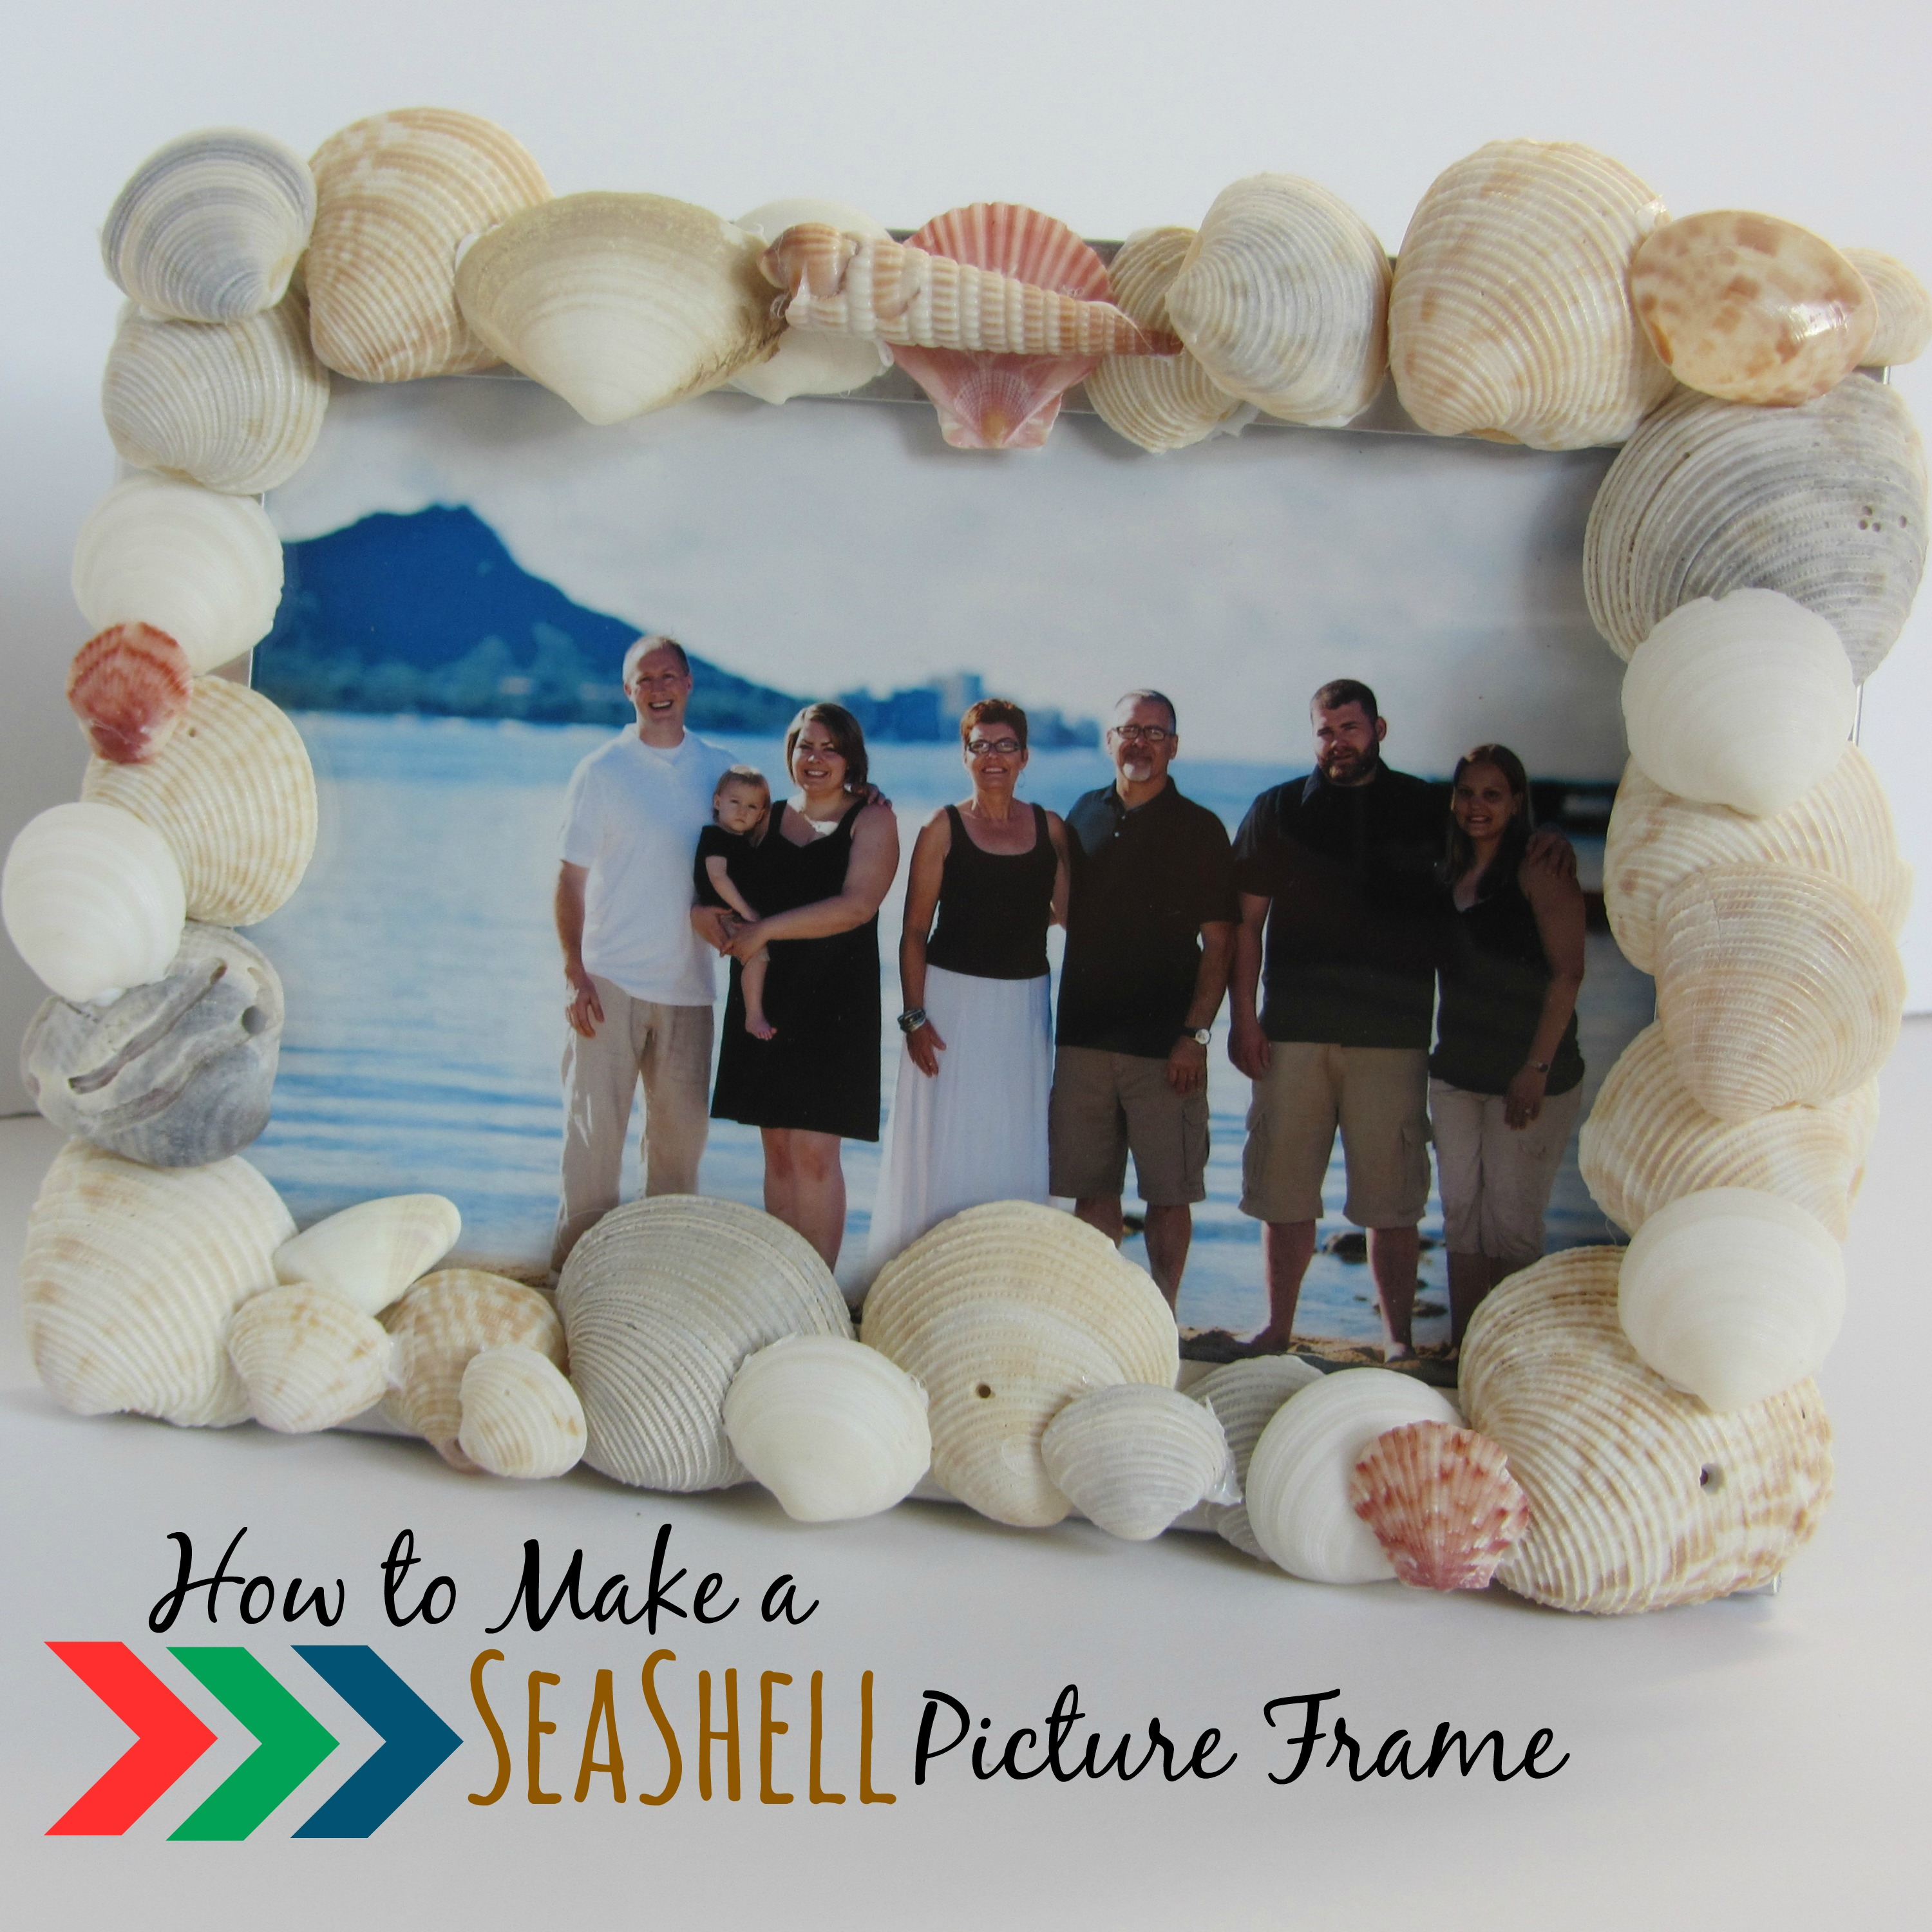 How to Make a Seashell Picture Frame - My Big Fat Happy Life